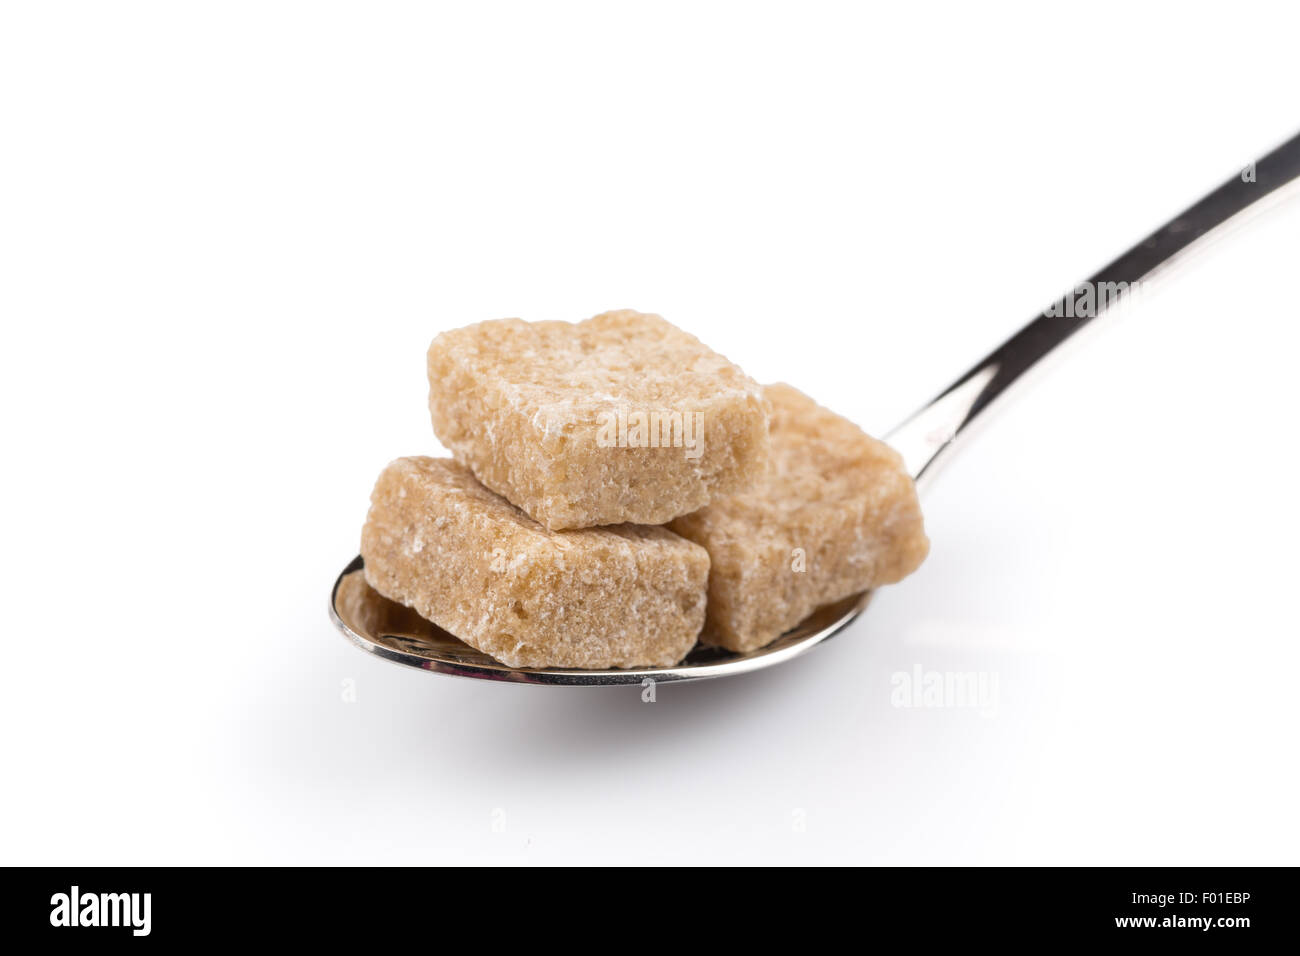 Cubes of brown sugar on a metal spoon - Stock Image